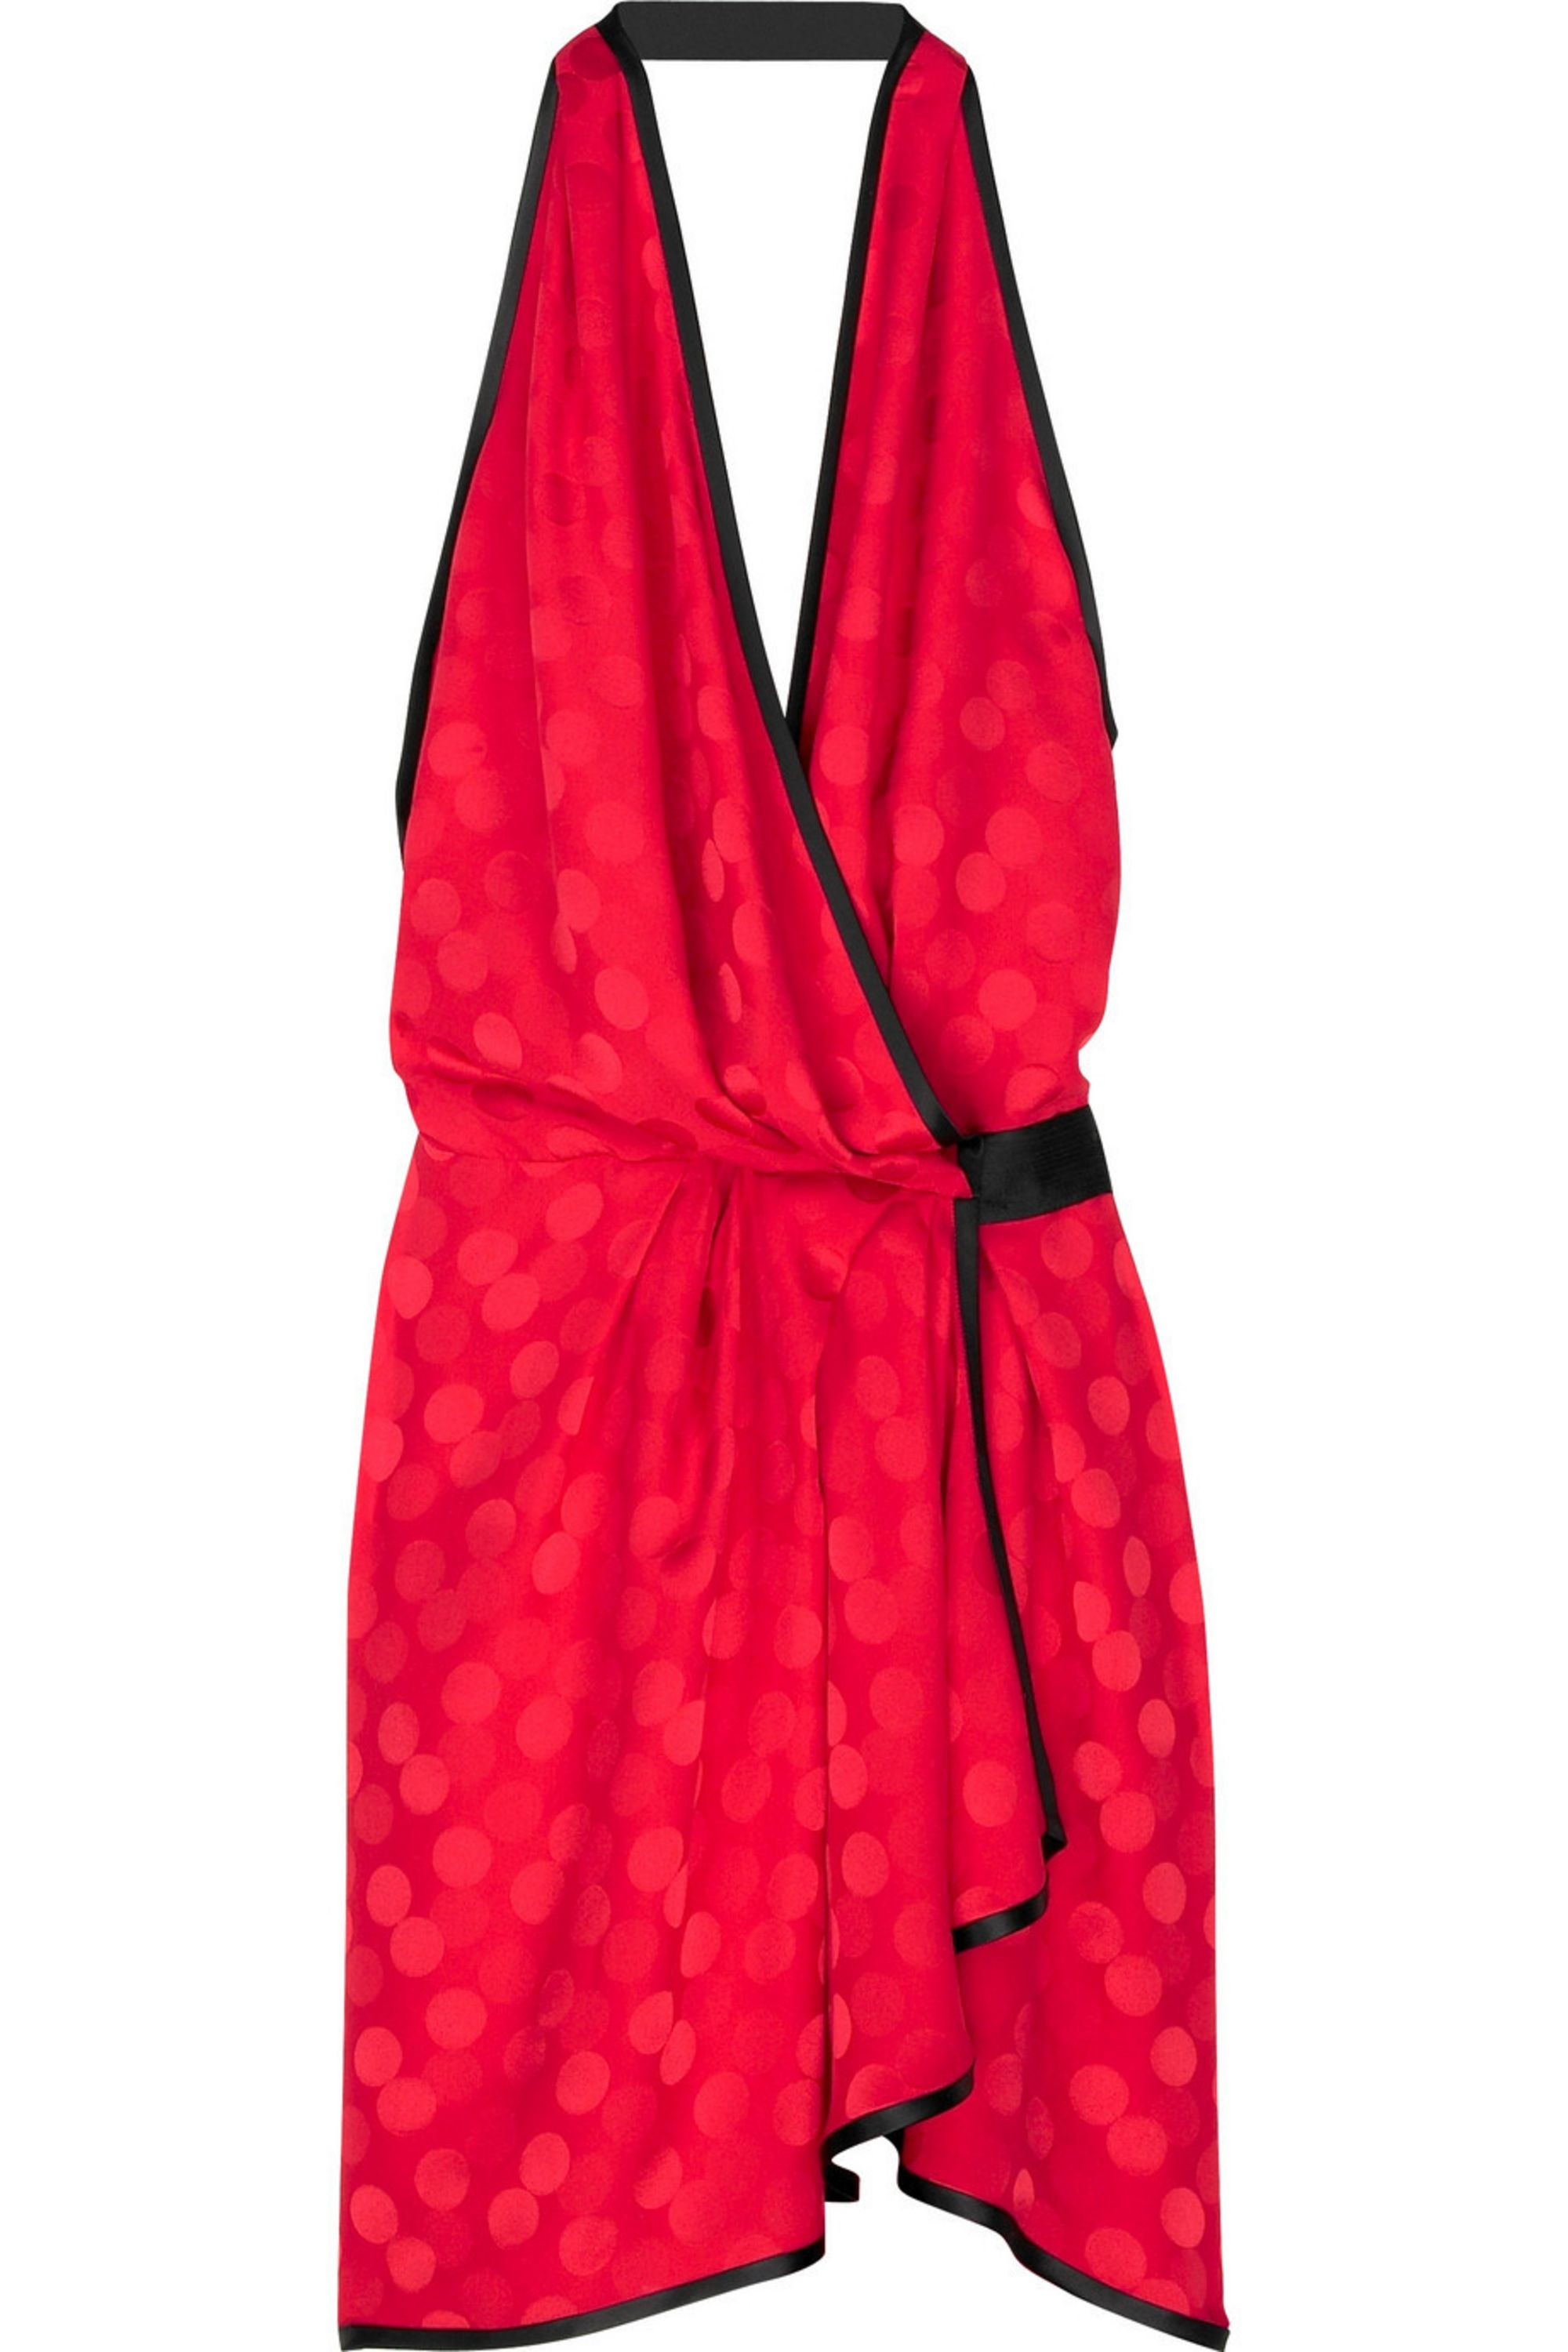 Tomato Red Spotty Wrap Dress Runway Marc Jacobs Net A Porter